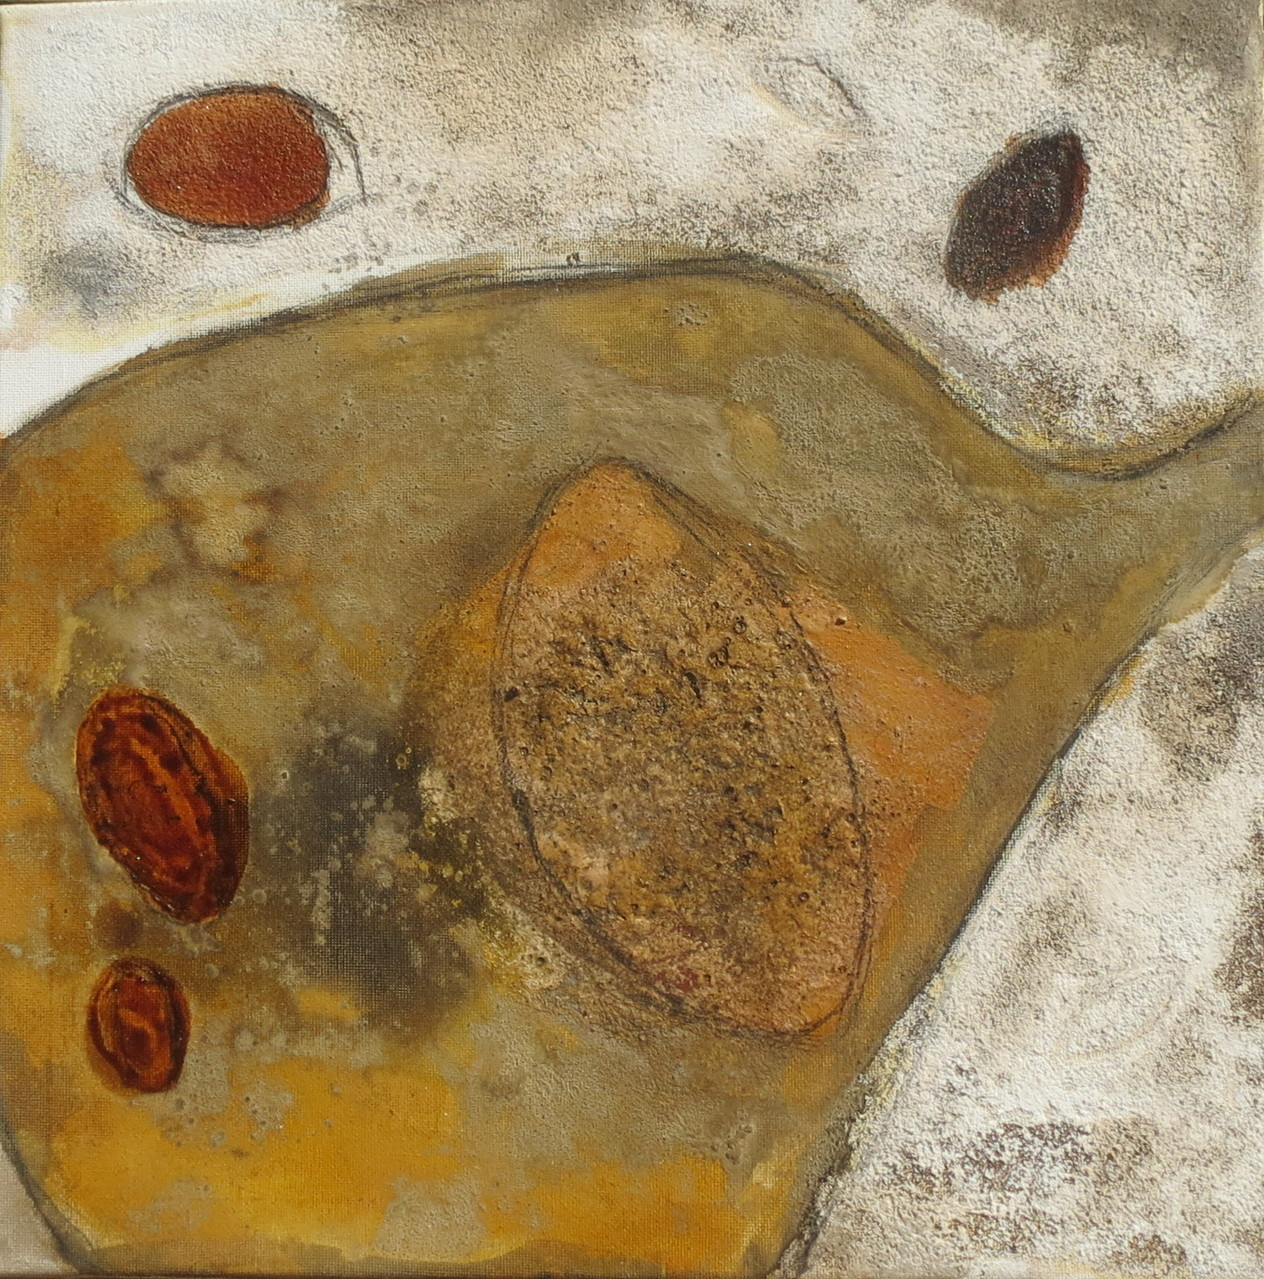 Ovale, 40cm x 40cm, Mixed Media auf Leinwand